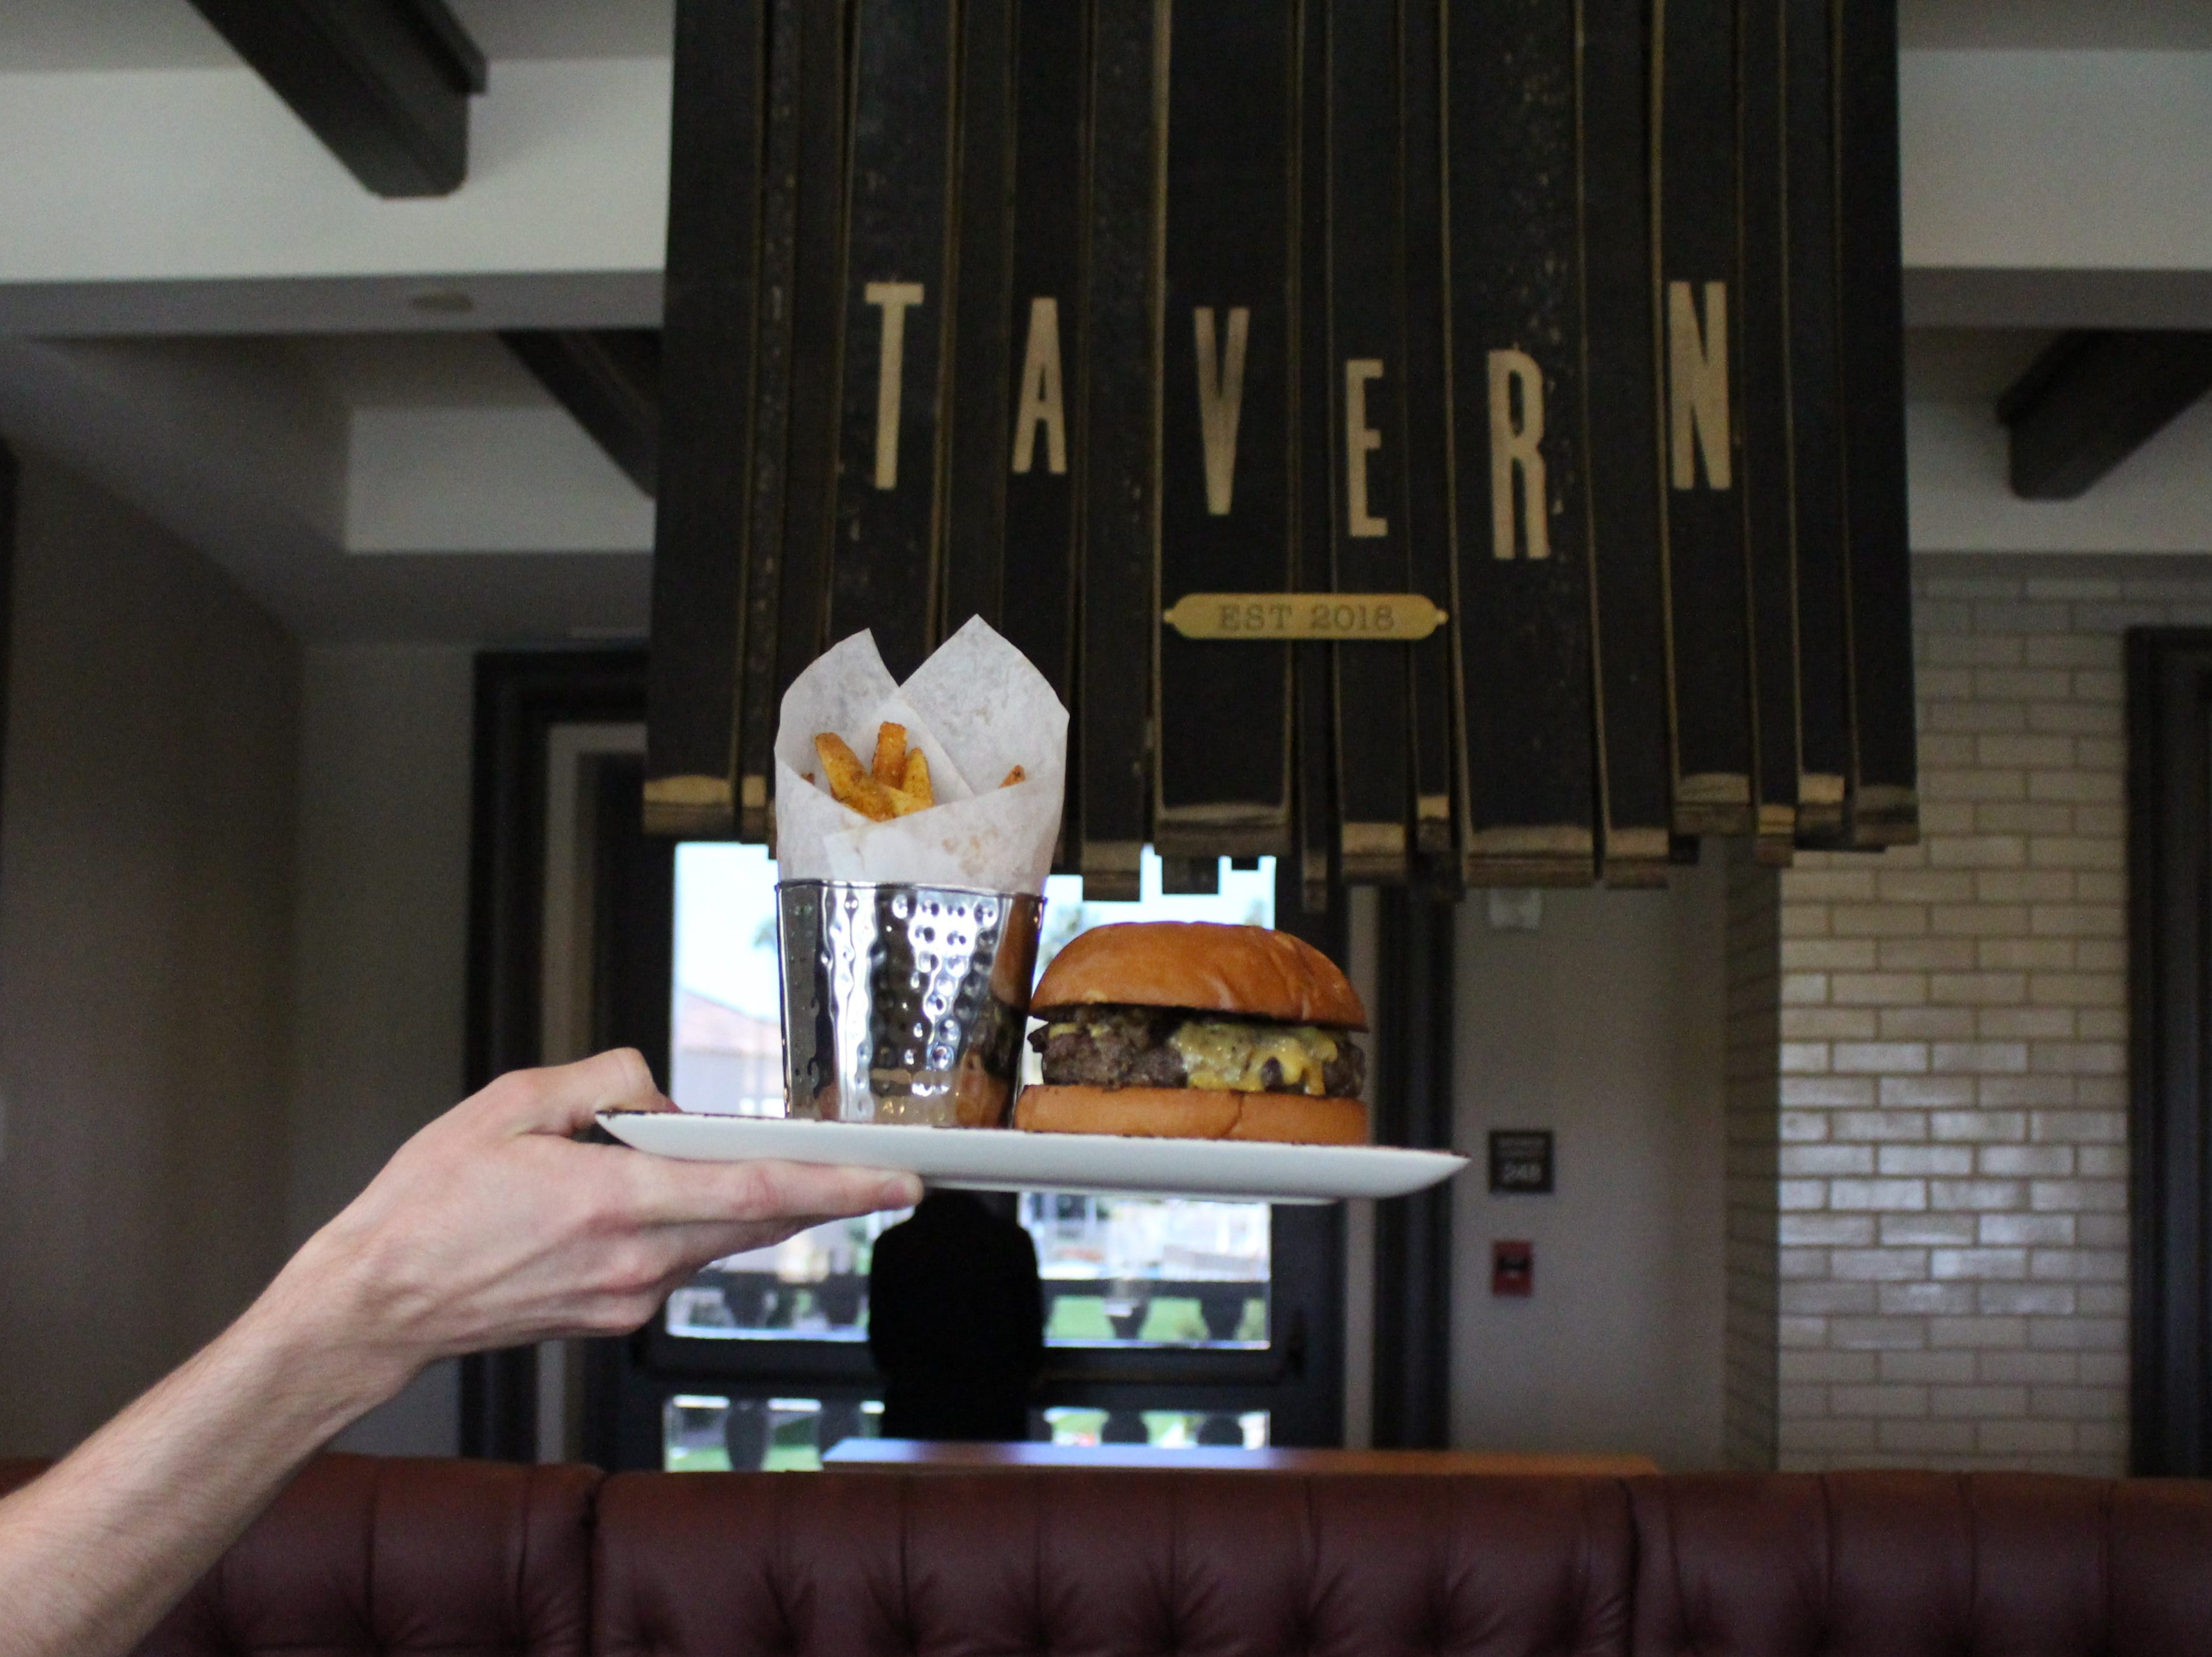 The Phoenician Tavern serves elevated American comfort food including burgers, sandwiches and mac and cheese.